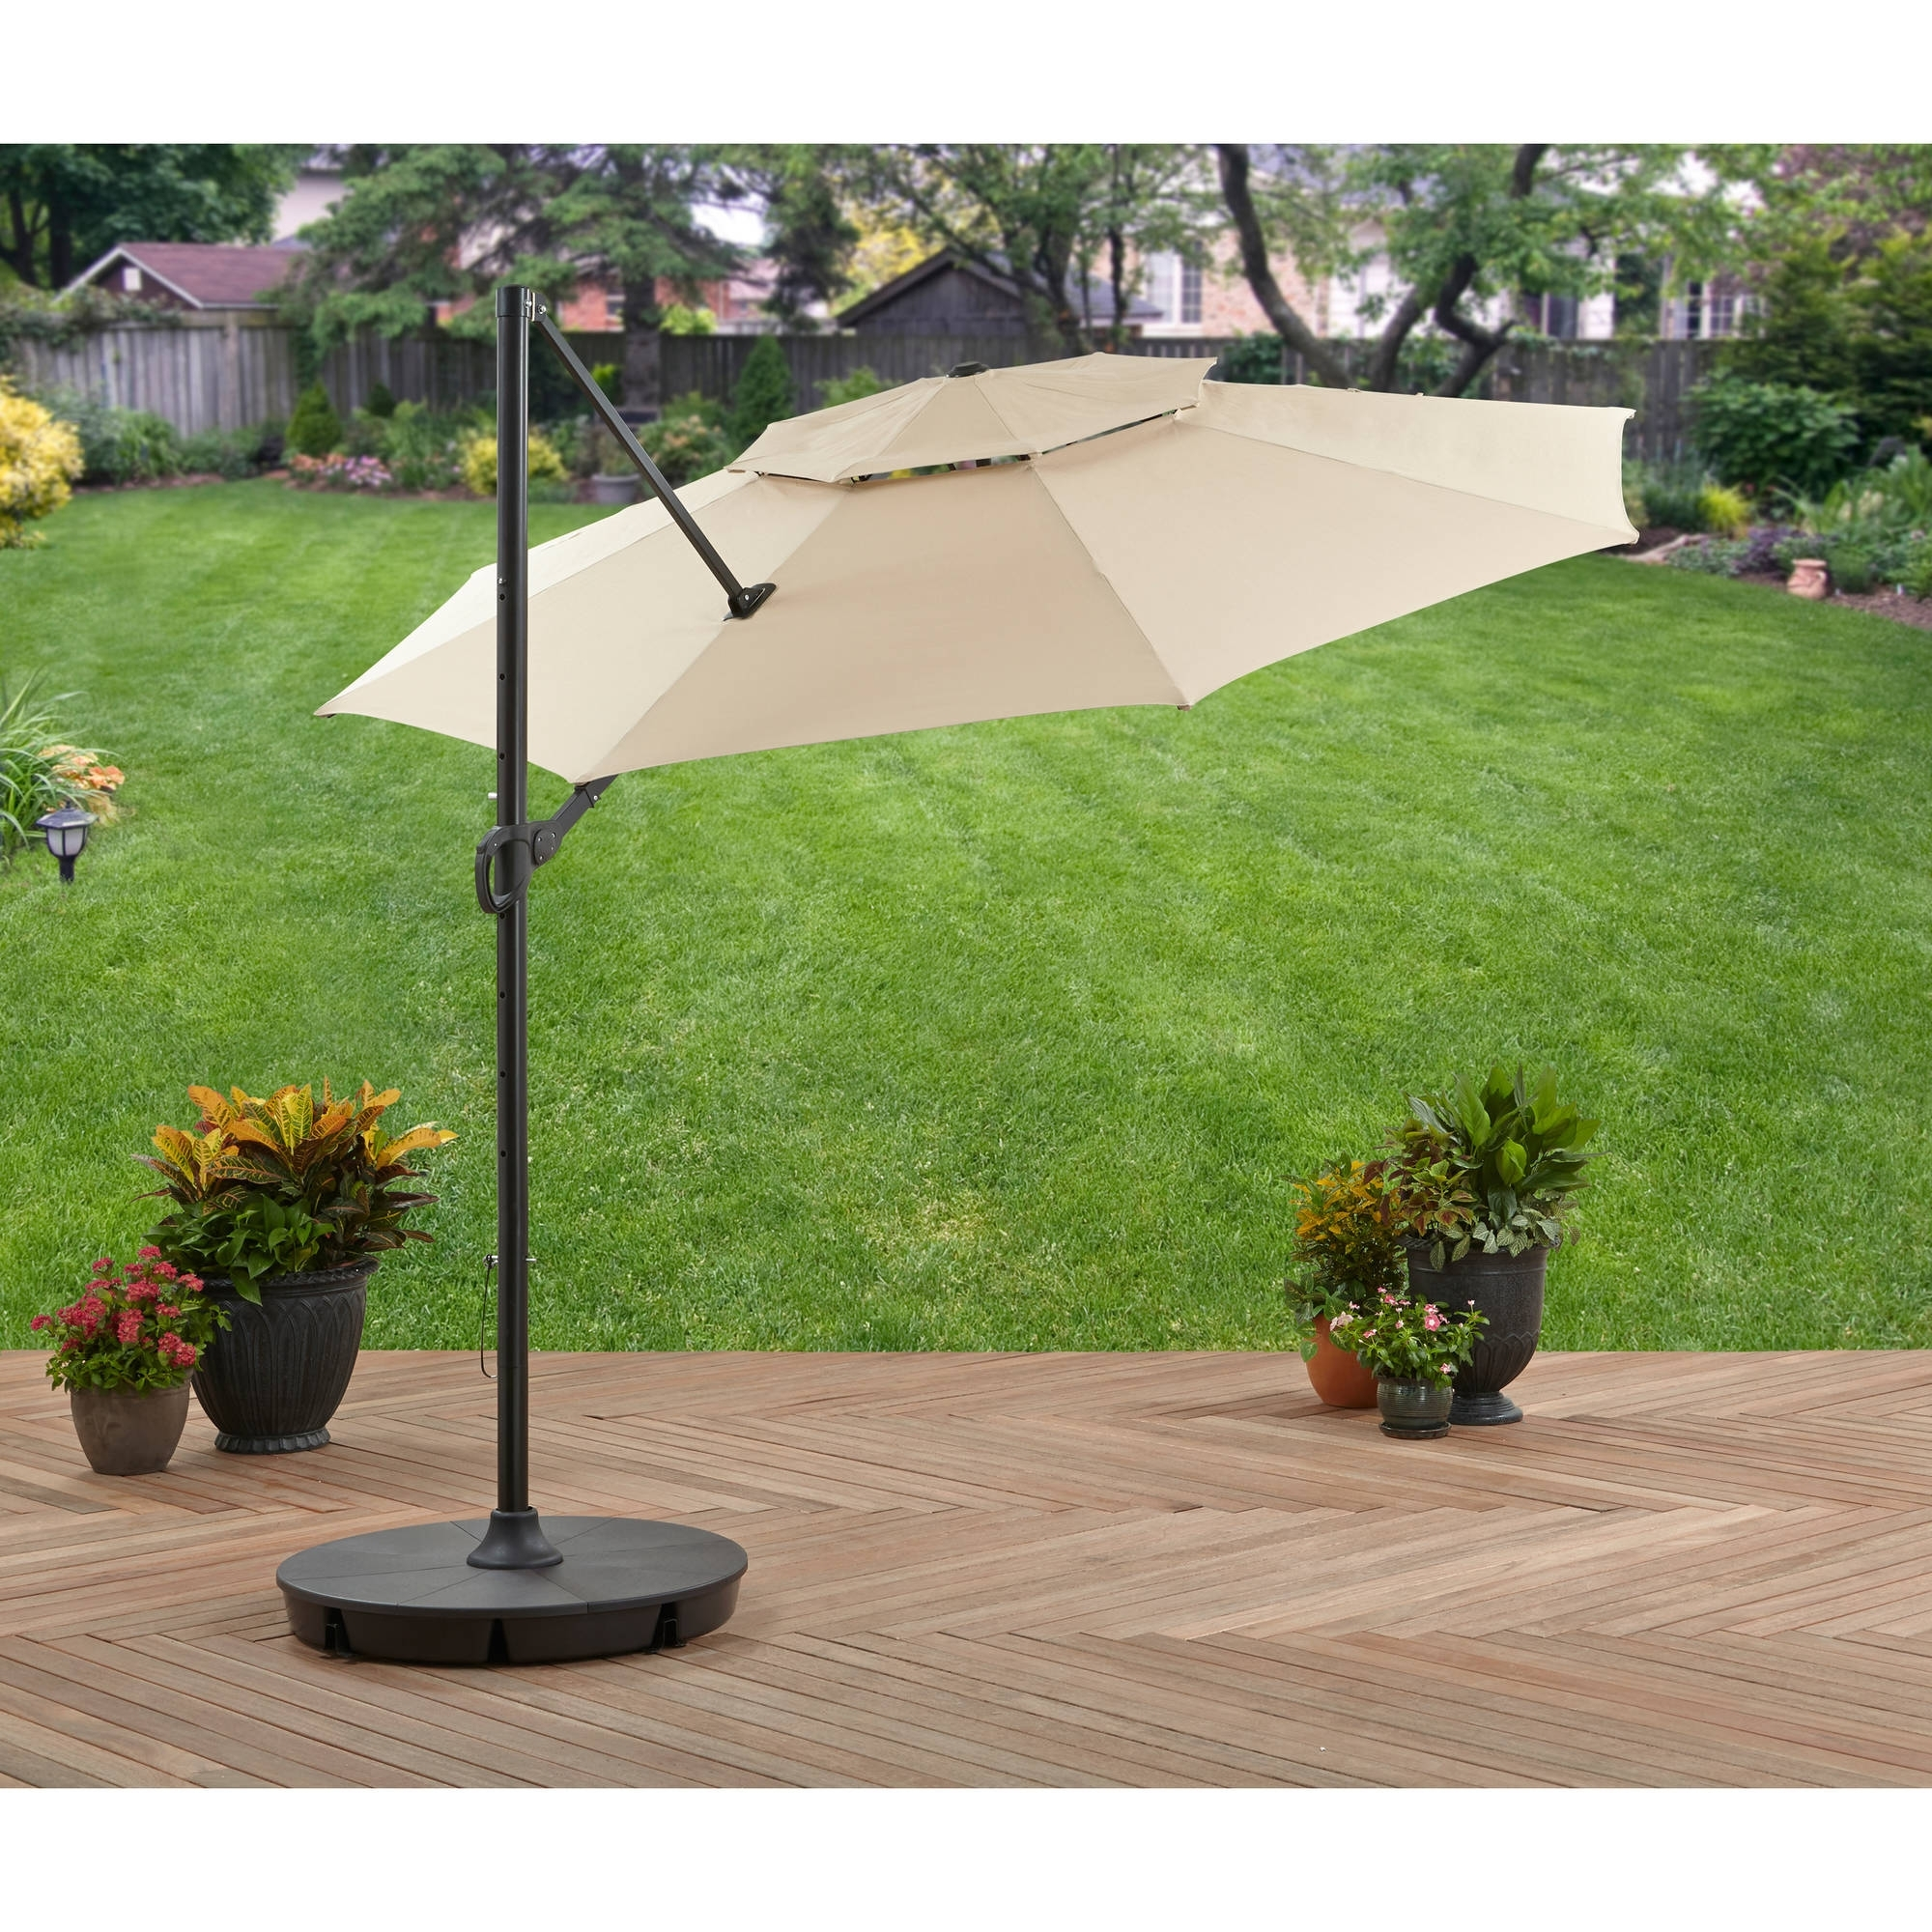 Famous Better Homes And Gardens 11' Offset Umbrella With Base, Tan For Walmart Umbrellas Patio (View 15 of 20)